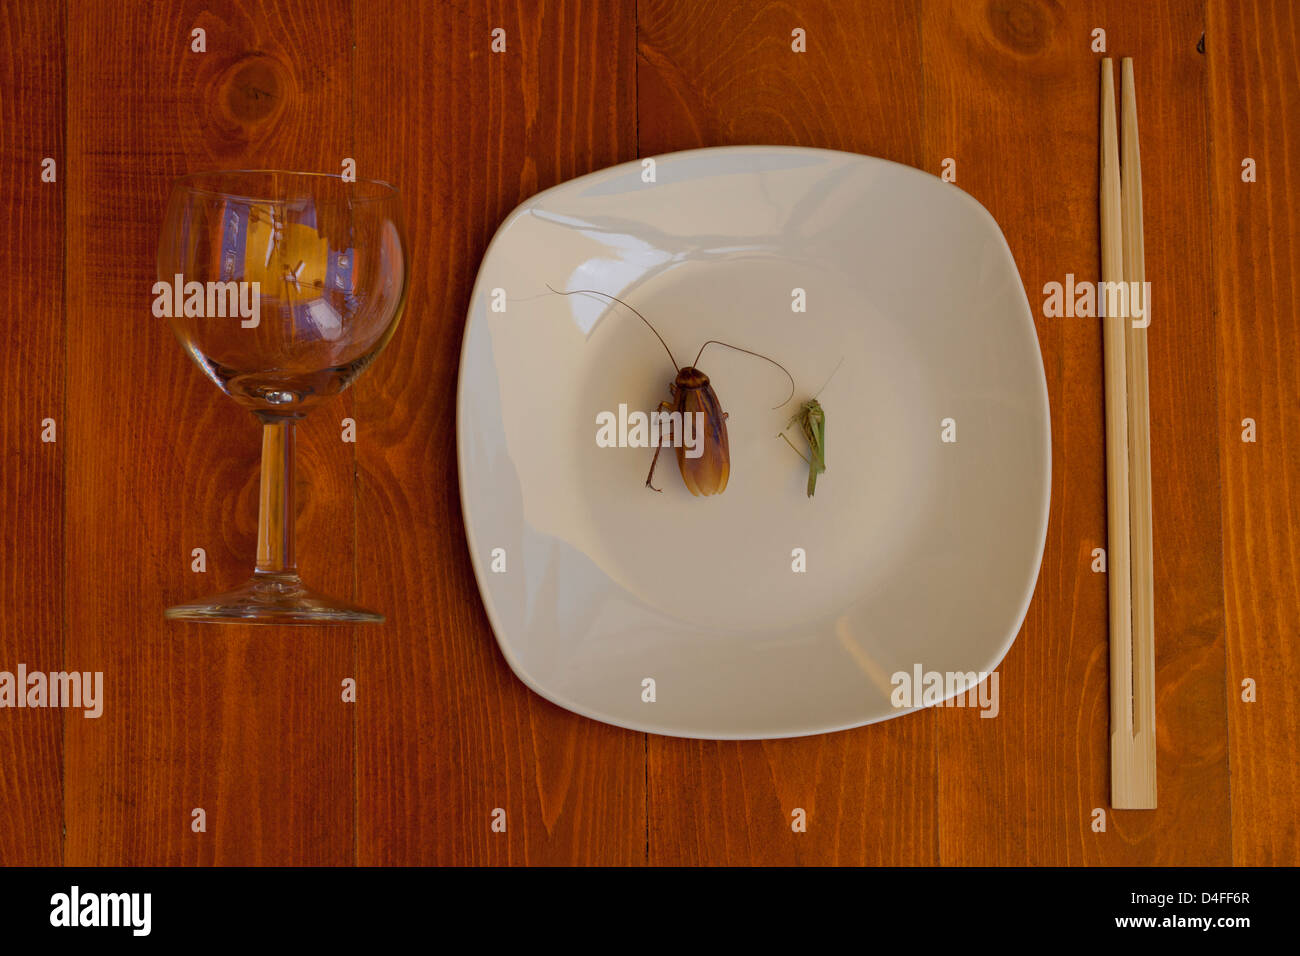 cockroach and grasshopper on plate, sticks tablecloths and wine glass - Stock Image